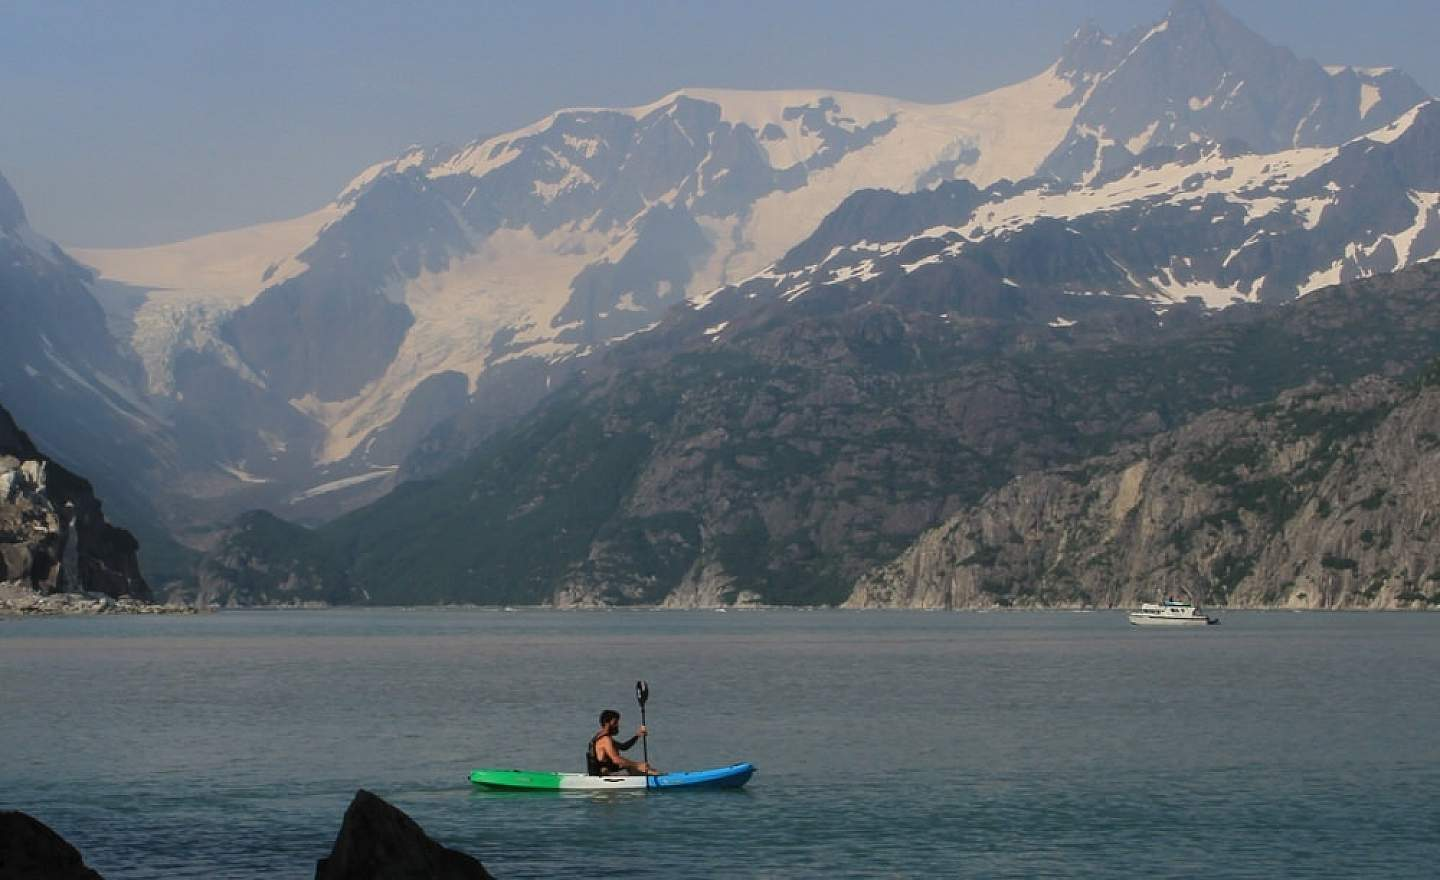 Alaska Fjord Charters is a refreshing get-away from the crowds